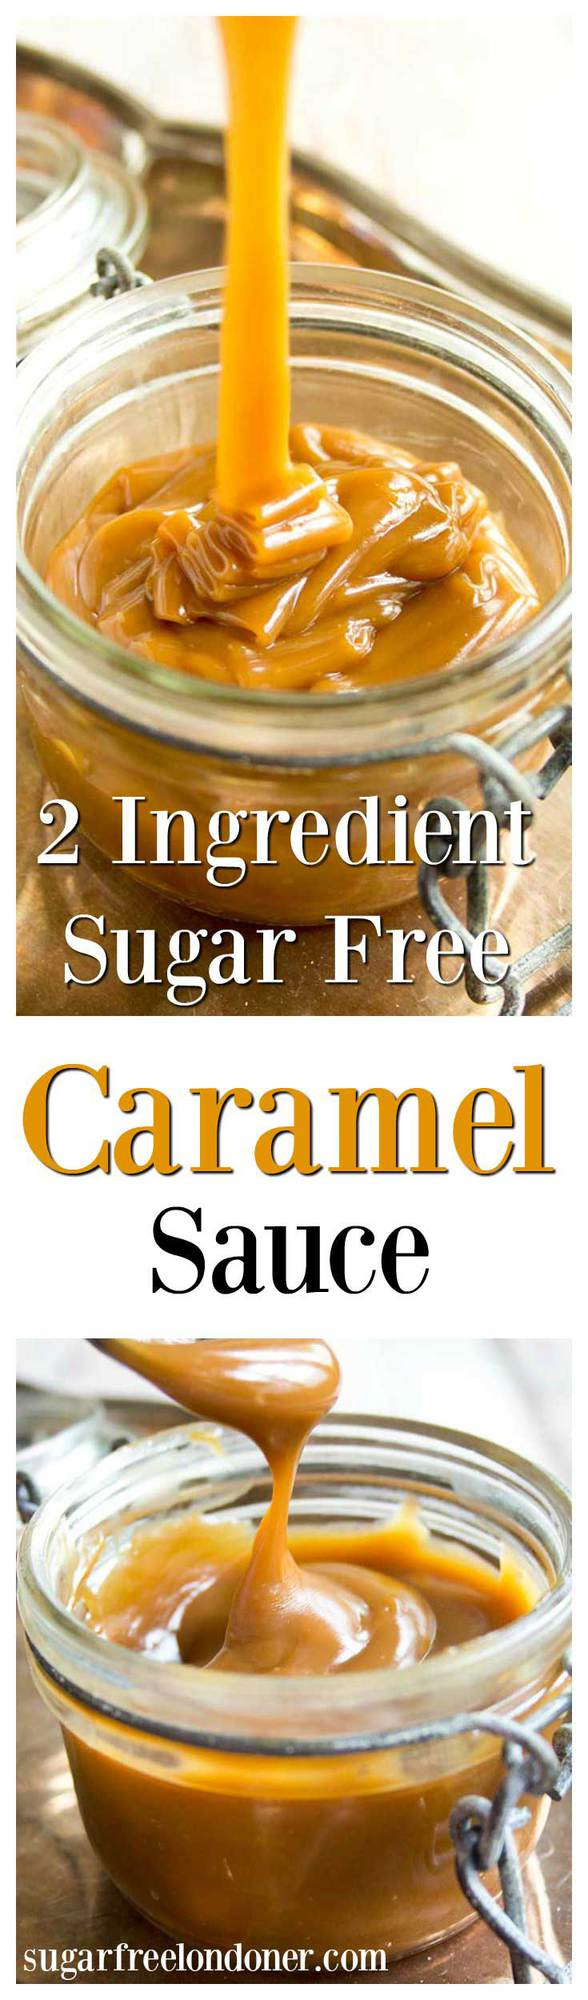 The best things in life are simple - like this 2 ingredient sugar free caramel sauce. Low carb, vegan and delicious, it can be used in candy or as a topping for ice cream, cakes, pancakes or waffles. #caramel #caramelsauce #sugarfree #lowcarb #diabetic #diabeticrecipe #dessert #easyrecipe #sauce